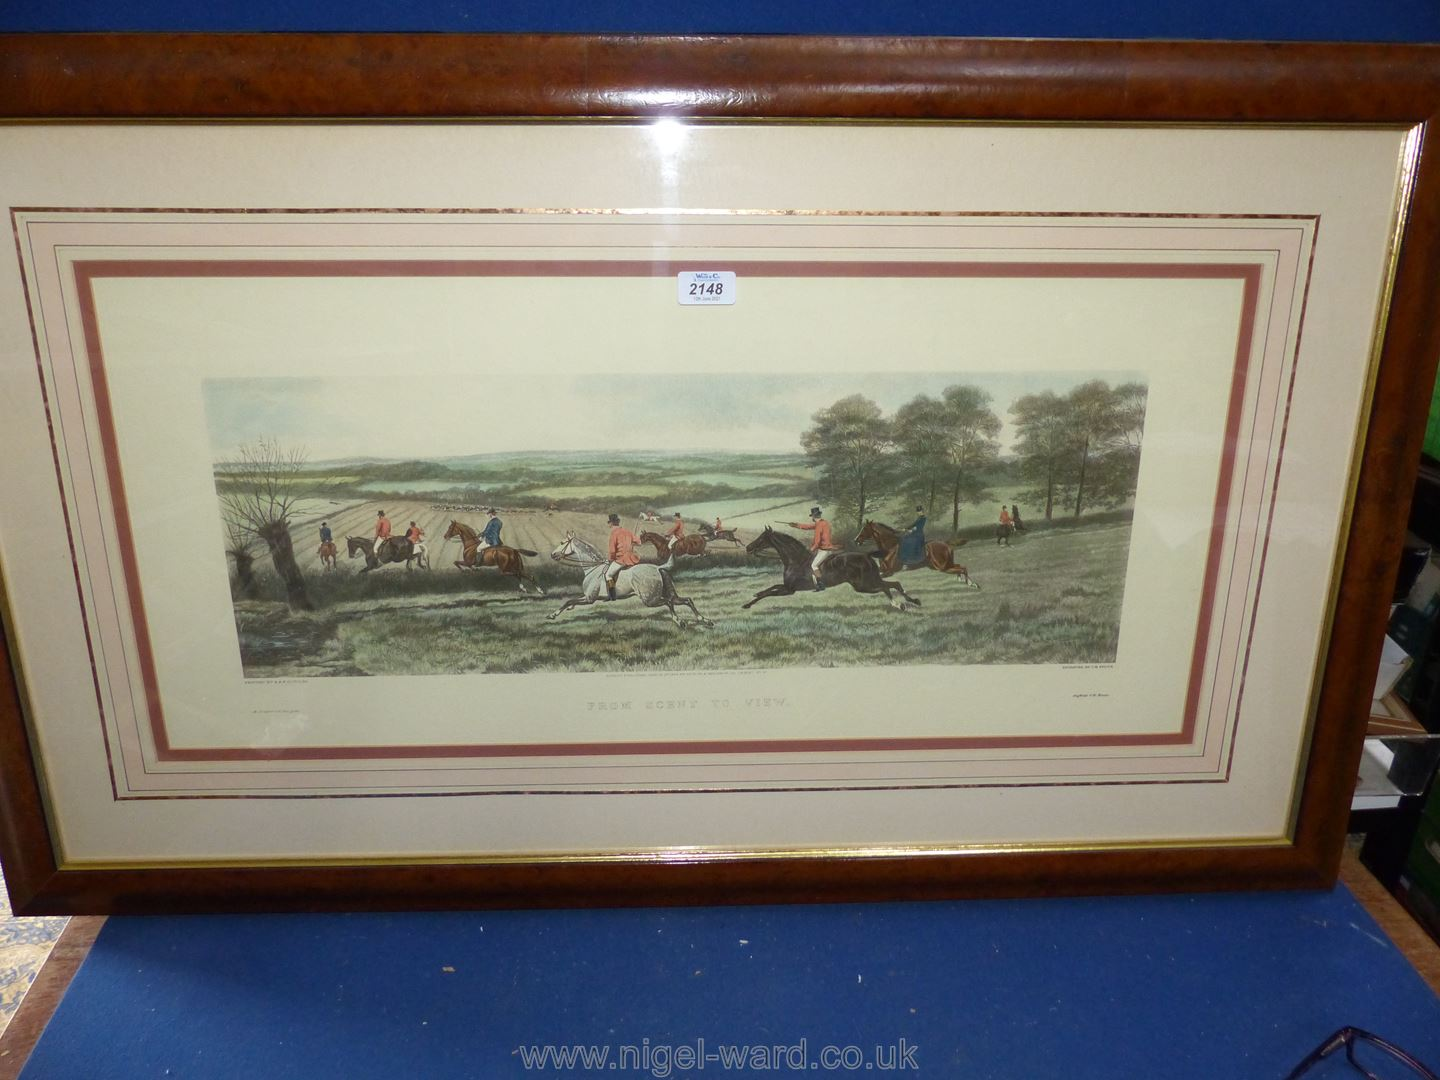 A large framed C.R. Stock Engraving from the painting by E.A.S.